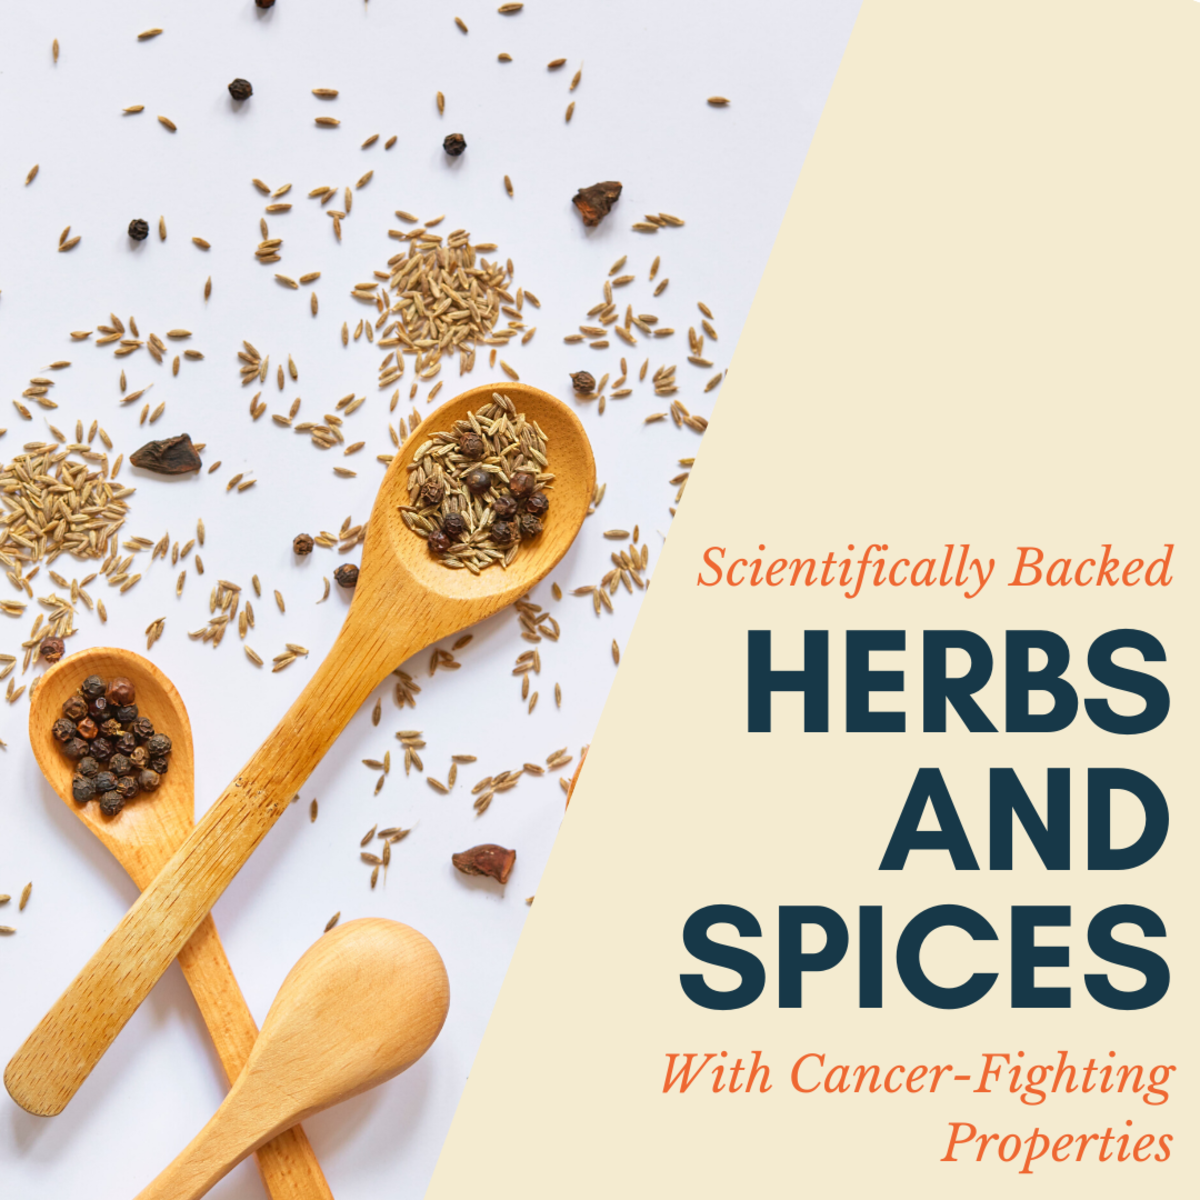 Herbs and Spices: Can You Lower Your Risk of Getting Cancer?